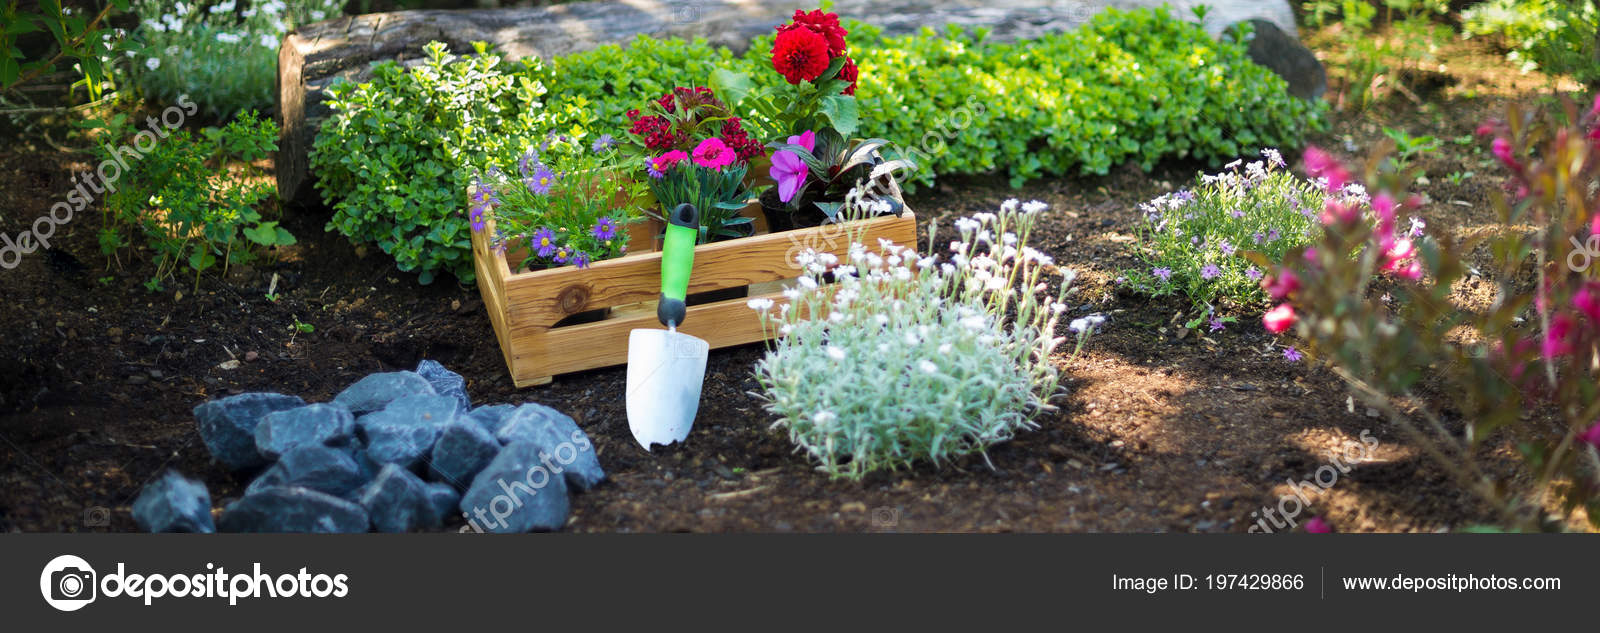 Horticulteur Val D Oise gardening crate full gorgeous plants garden tools ready